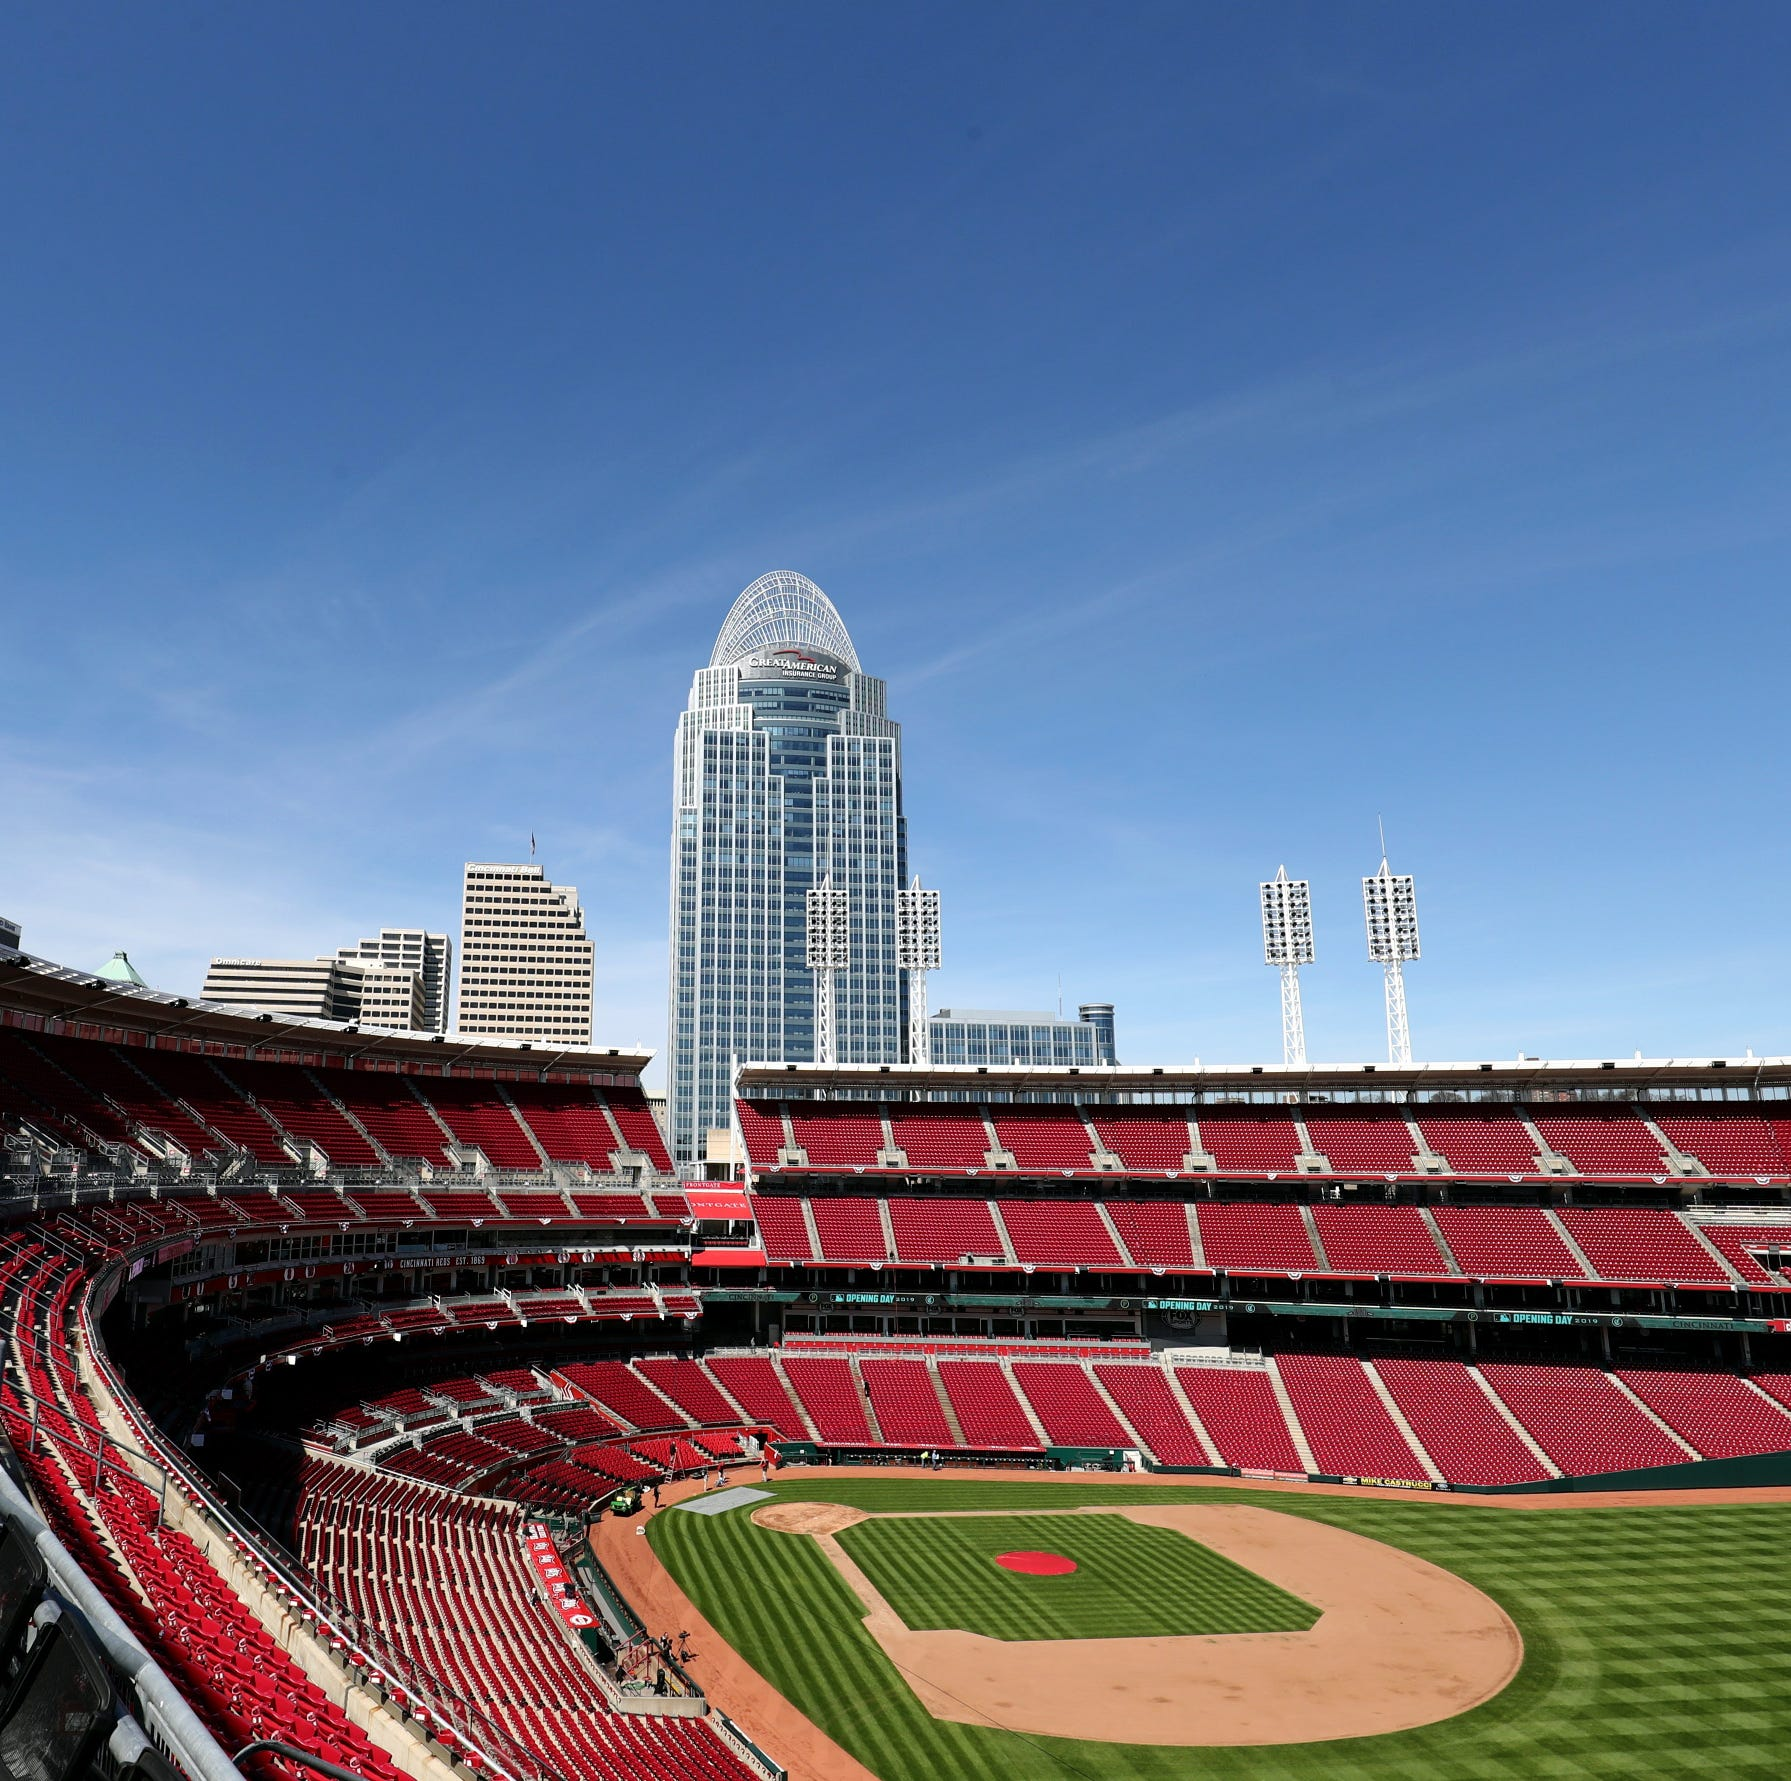 Bees just overtook the Reds game and caused a delay. Twitter reacted.